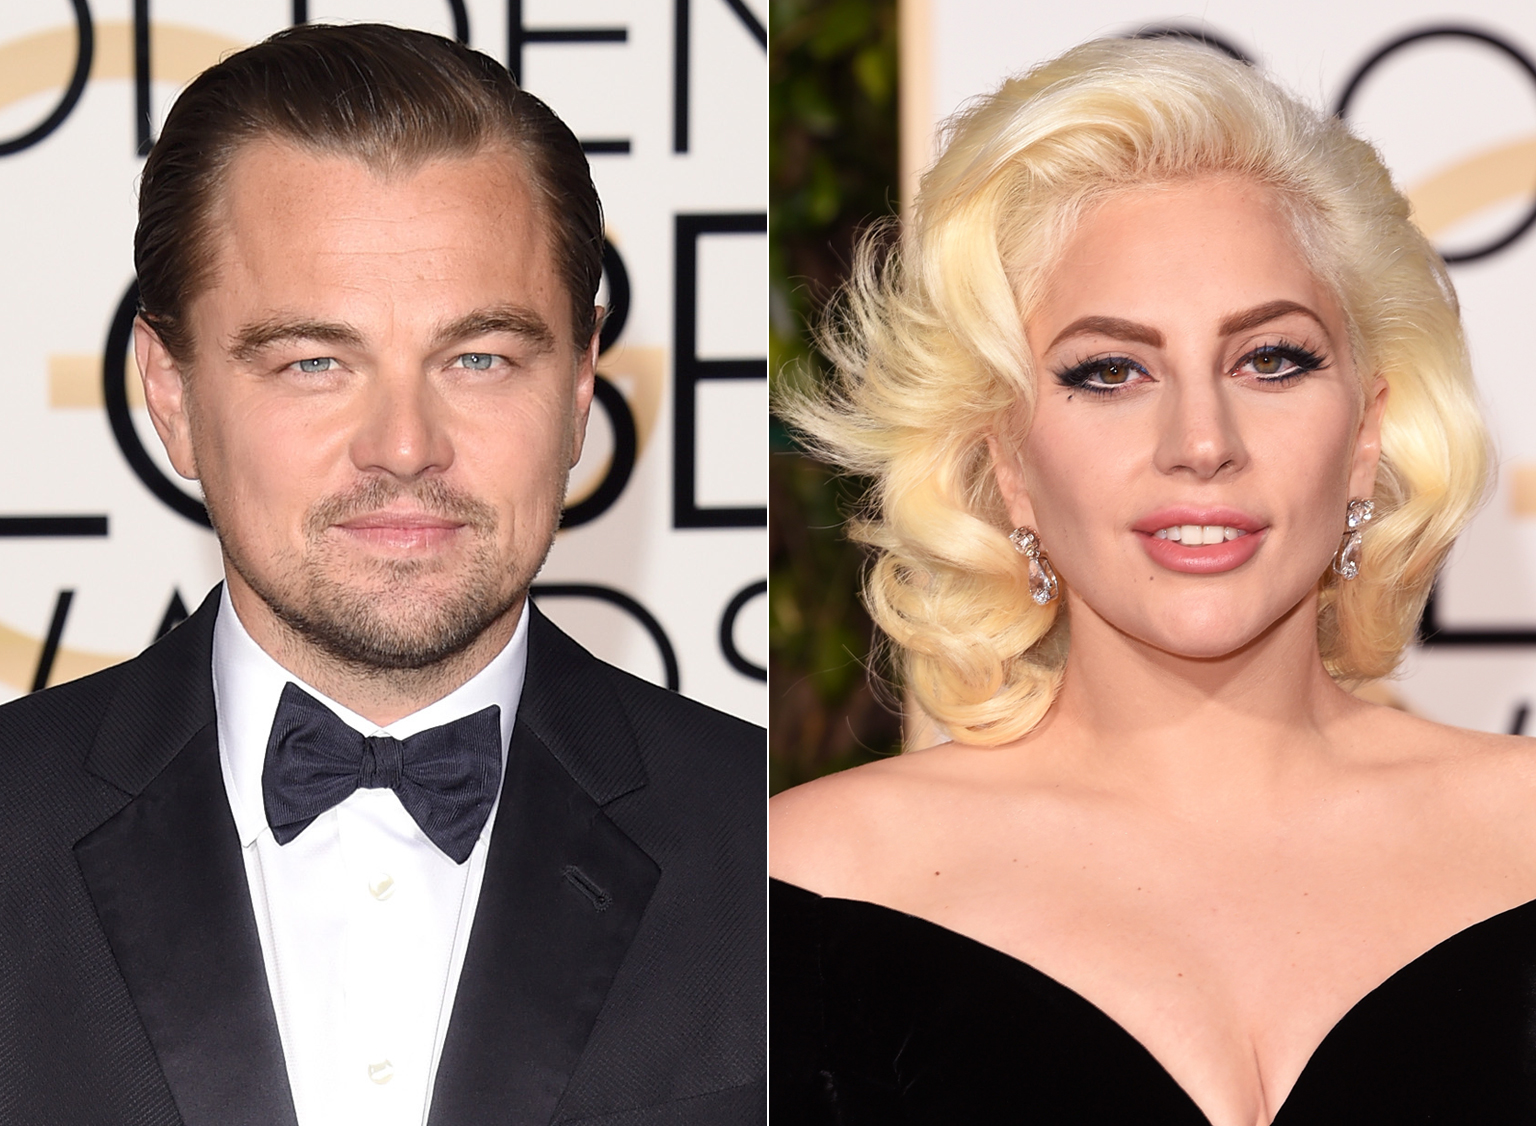 Leonardo DiCaprio Explains That Awkward Golden Globes Side-Eye Moment with Lady Gaga